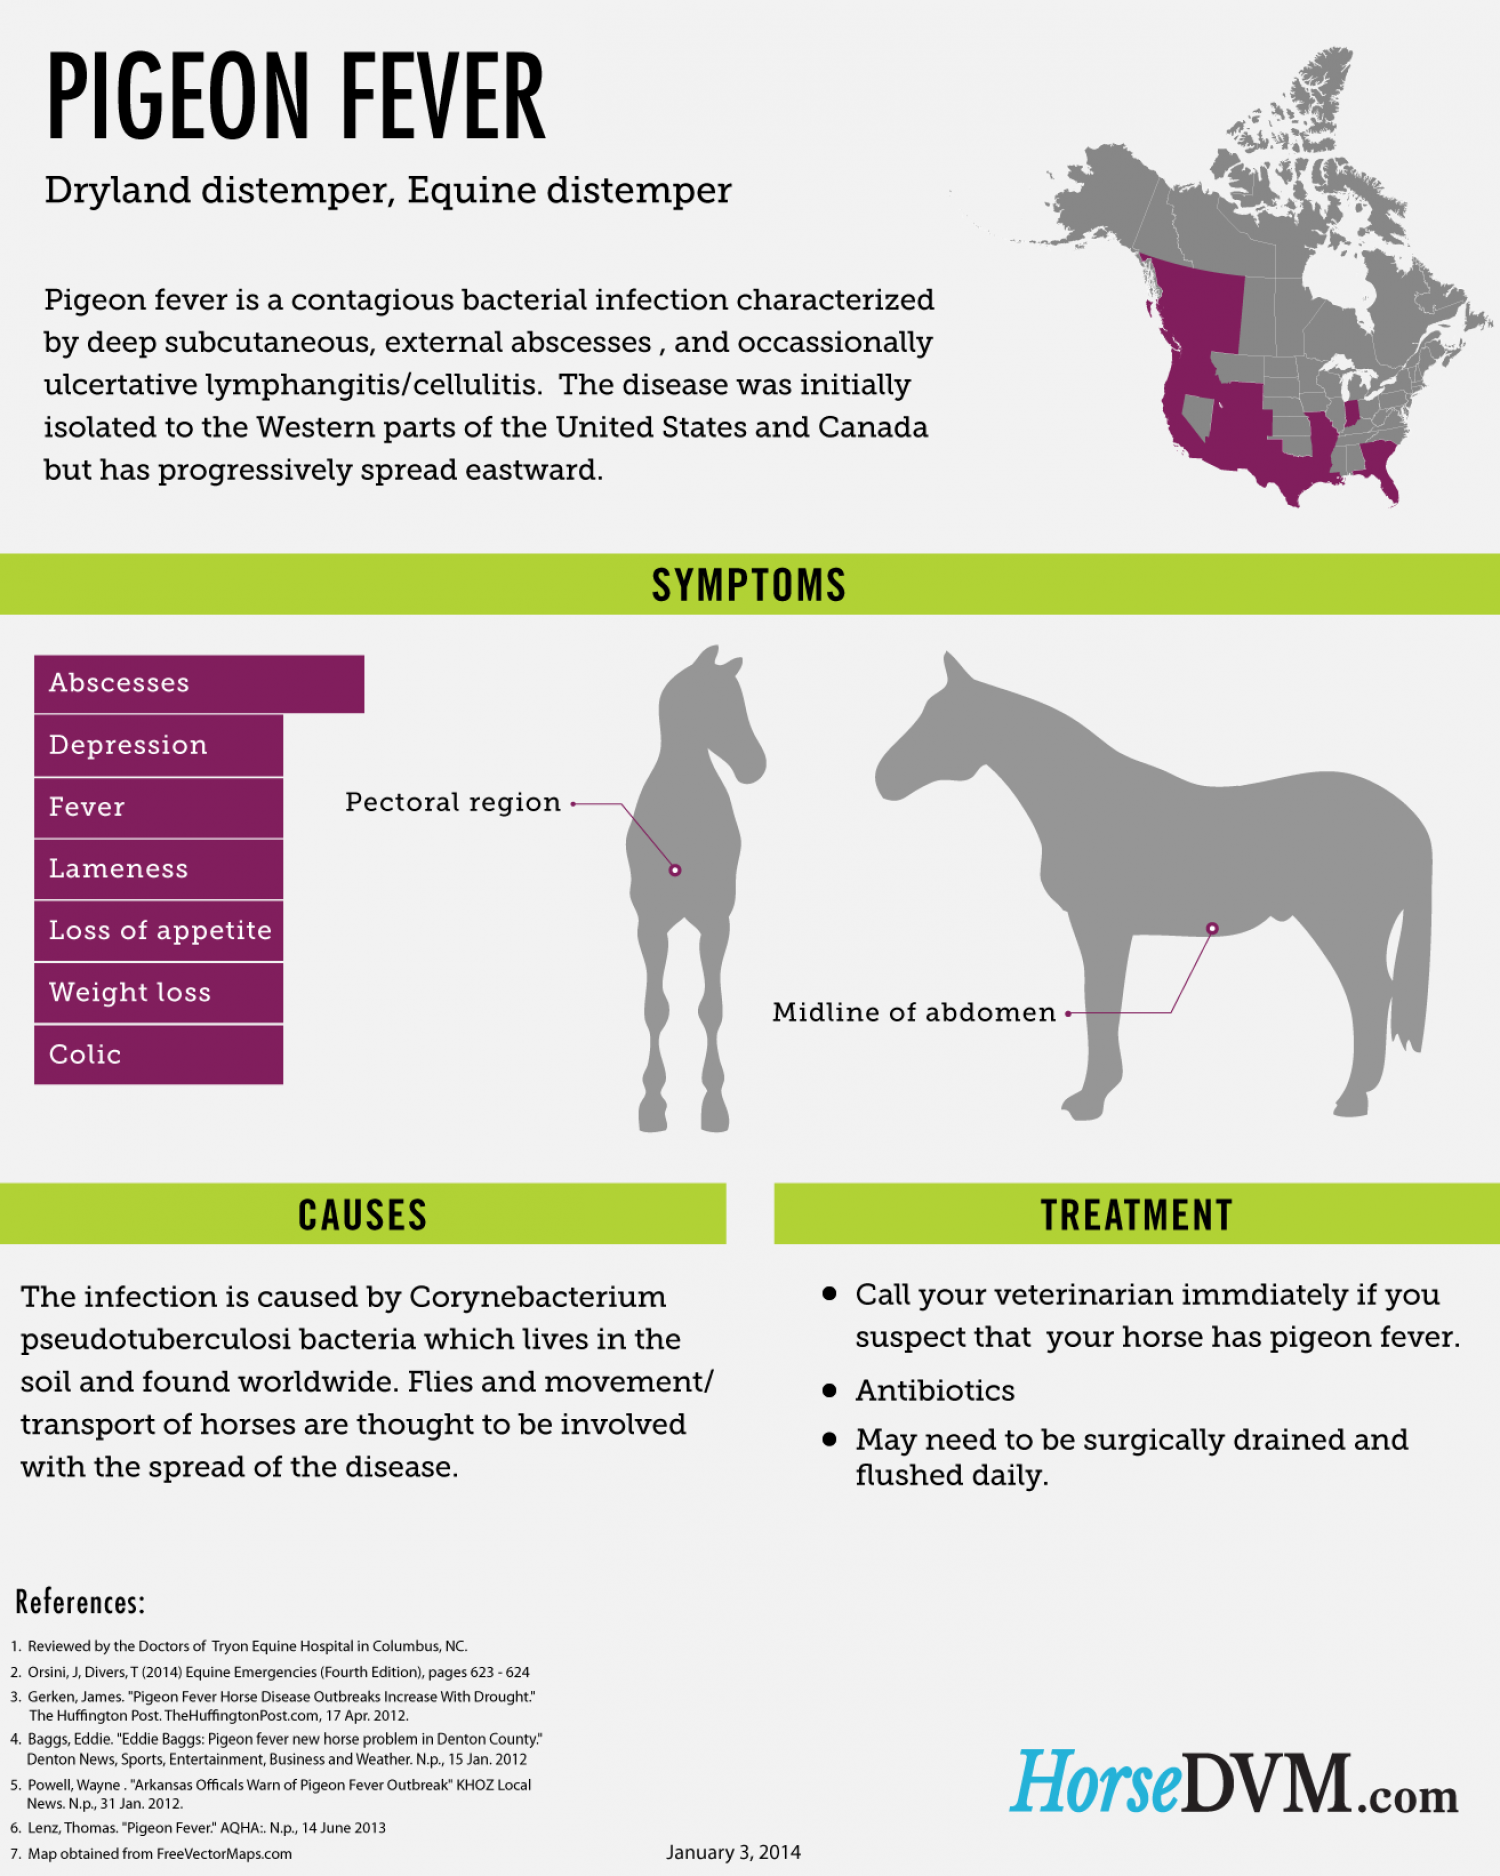 Pigeon Fever in Horses Infographic